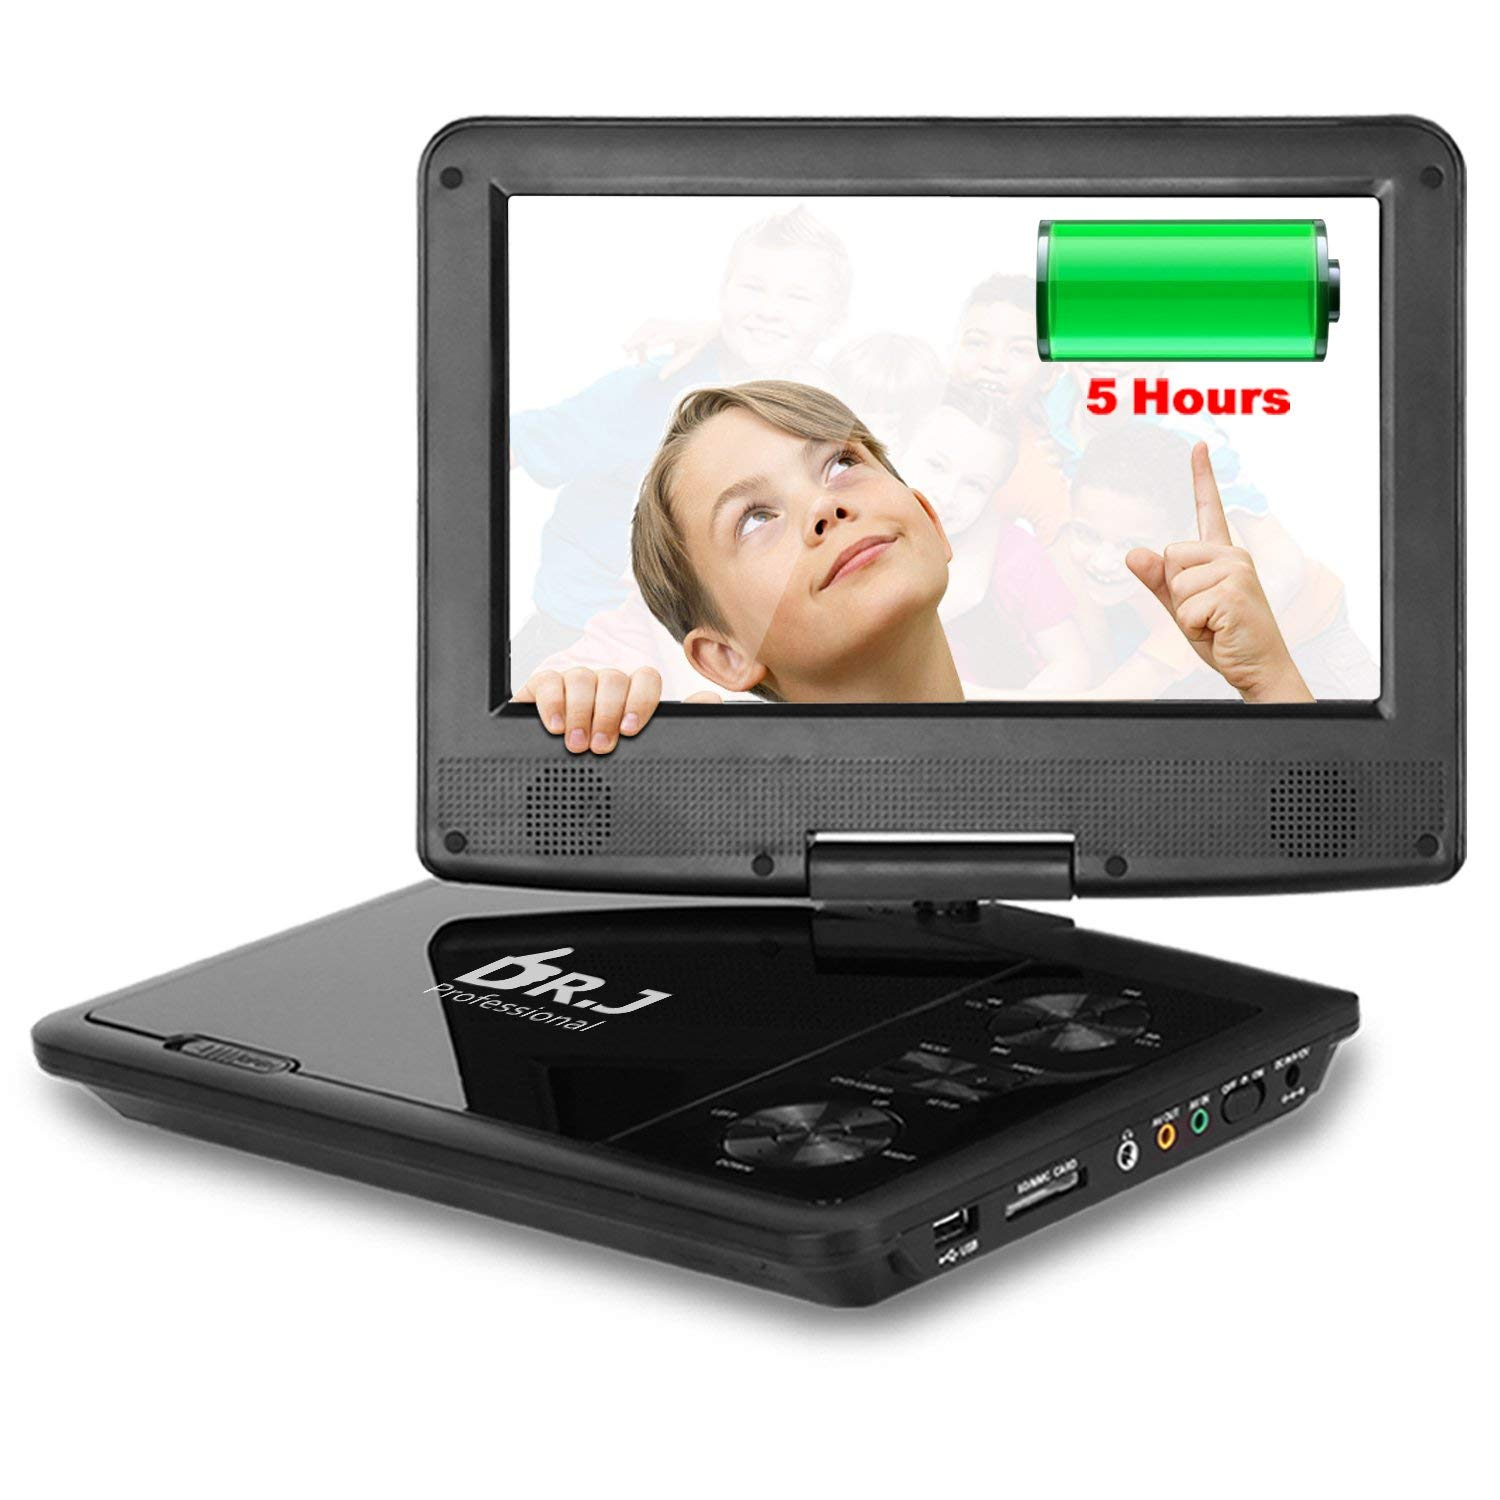 Top Five Best Portable DVD Players